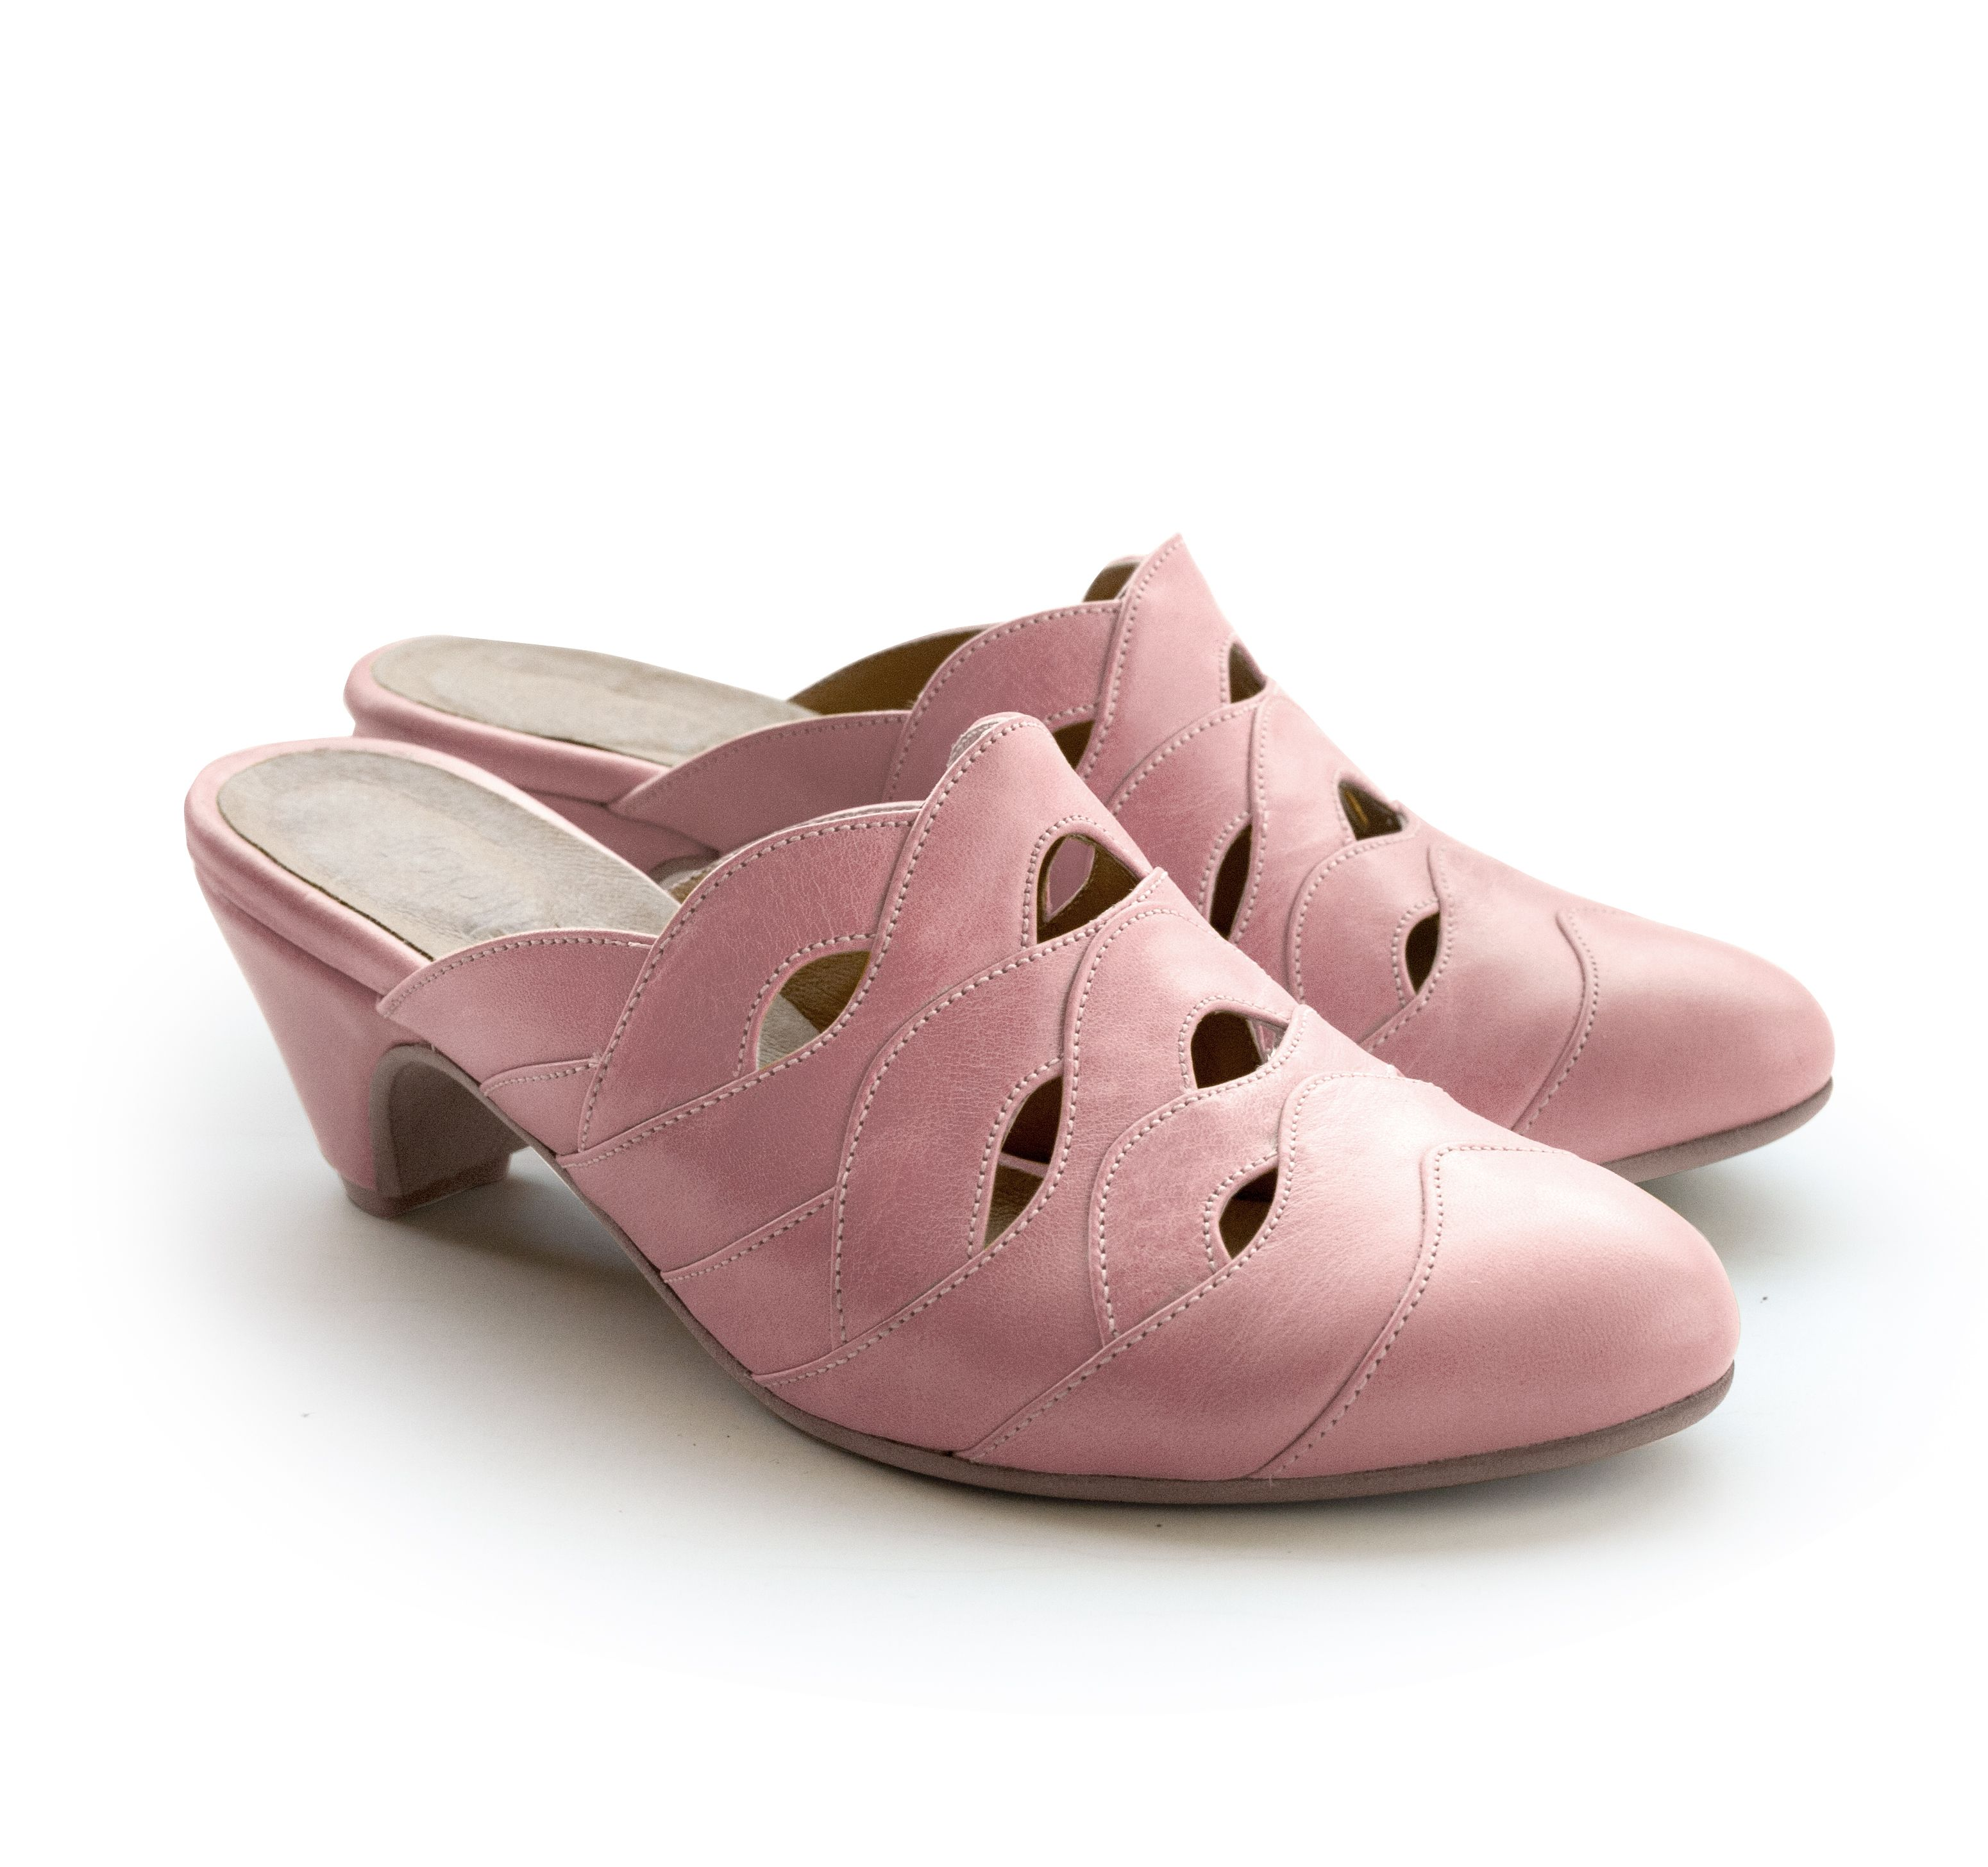 Alice Raspberry Pink.  http://liebling-shoes.com/shop.html